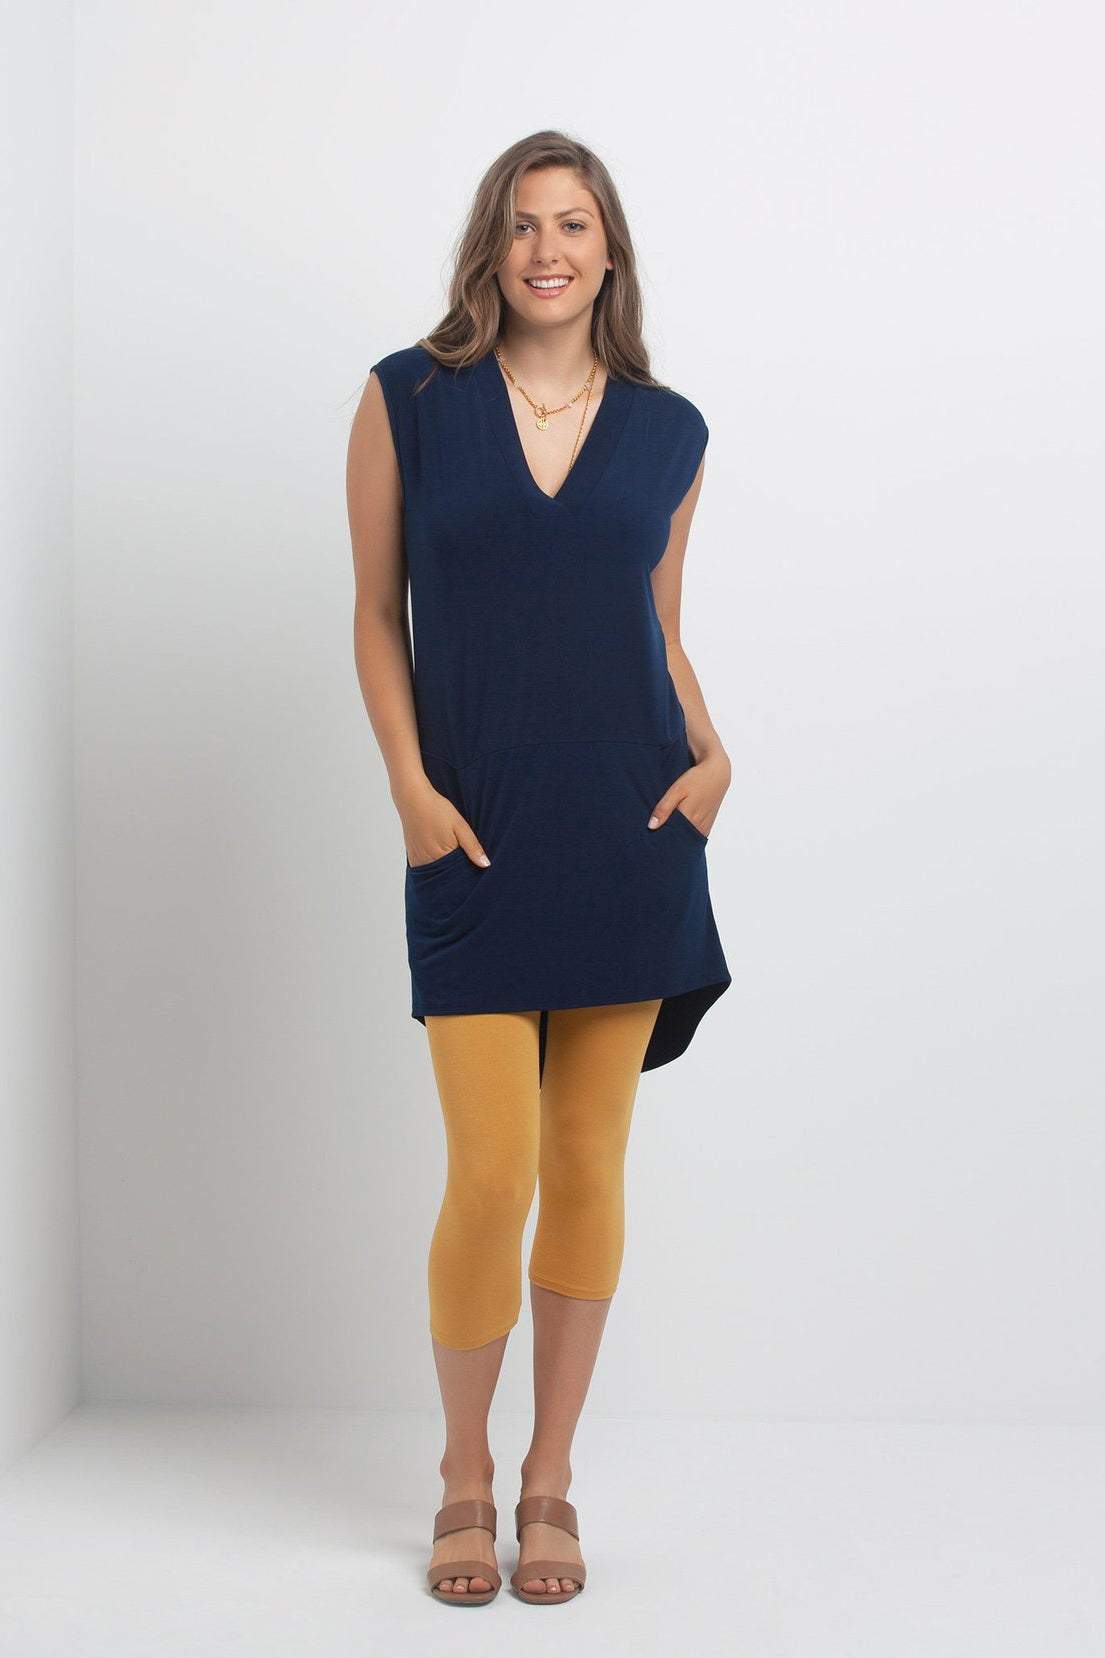 Morticia Dress by Kollontai, Navy, sleeveless, V-neck, high-low hemline, pockets, sizes XS to XXL, made in Montreal